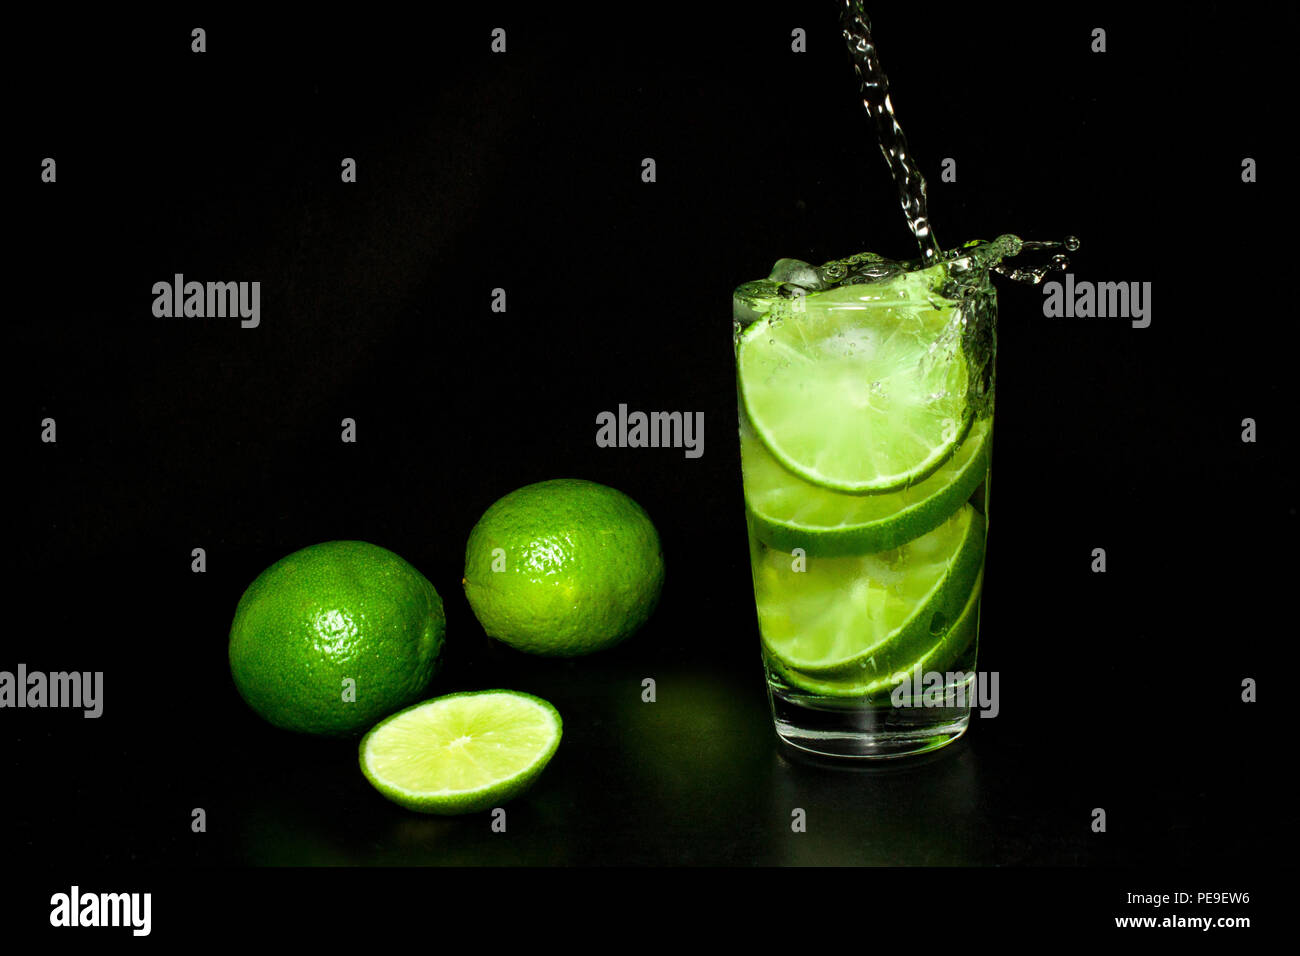 Summer refreshing and beverages concept. Glass of cold drink with ice and fresh ripe slice green limes on black background. Homemade lemonade. Mojito  - Stock Image